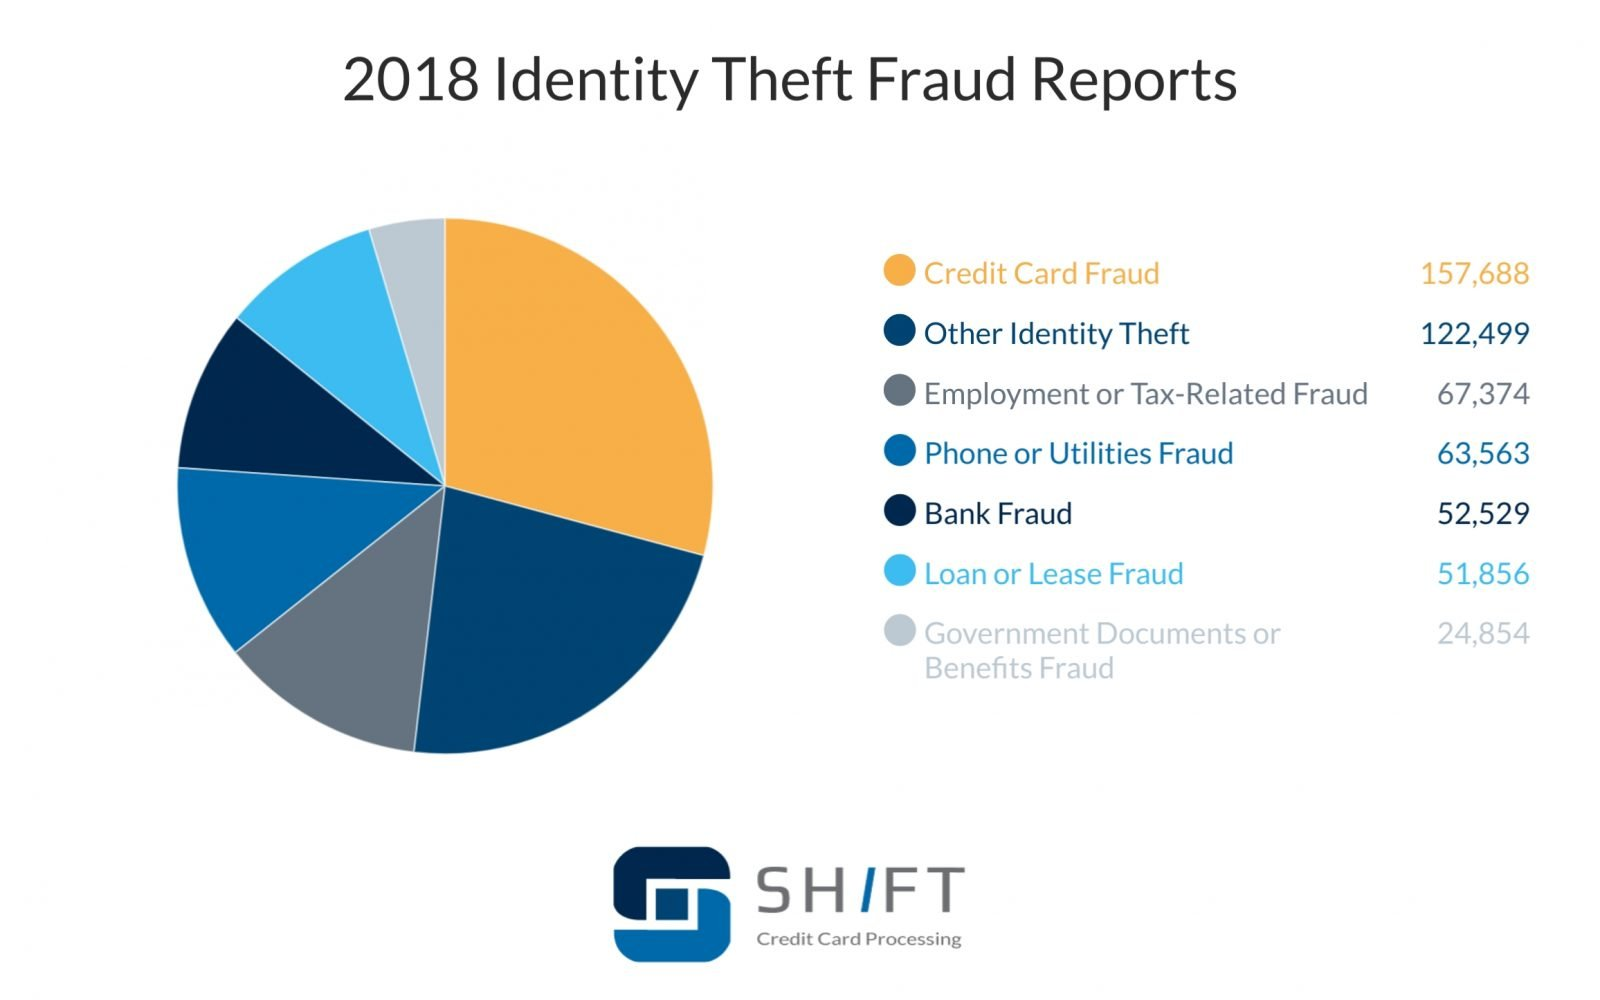 a pie chart displaying the types of identity theft fraud reports in 2018